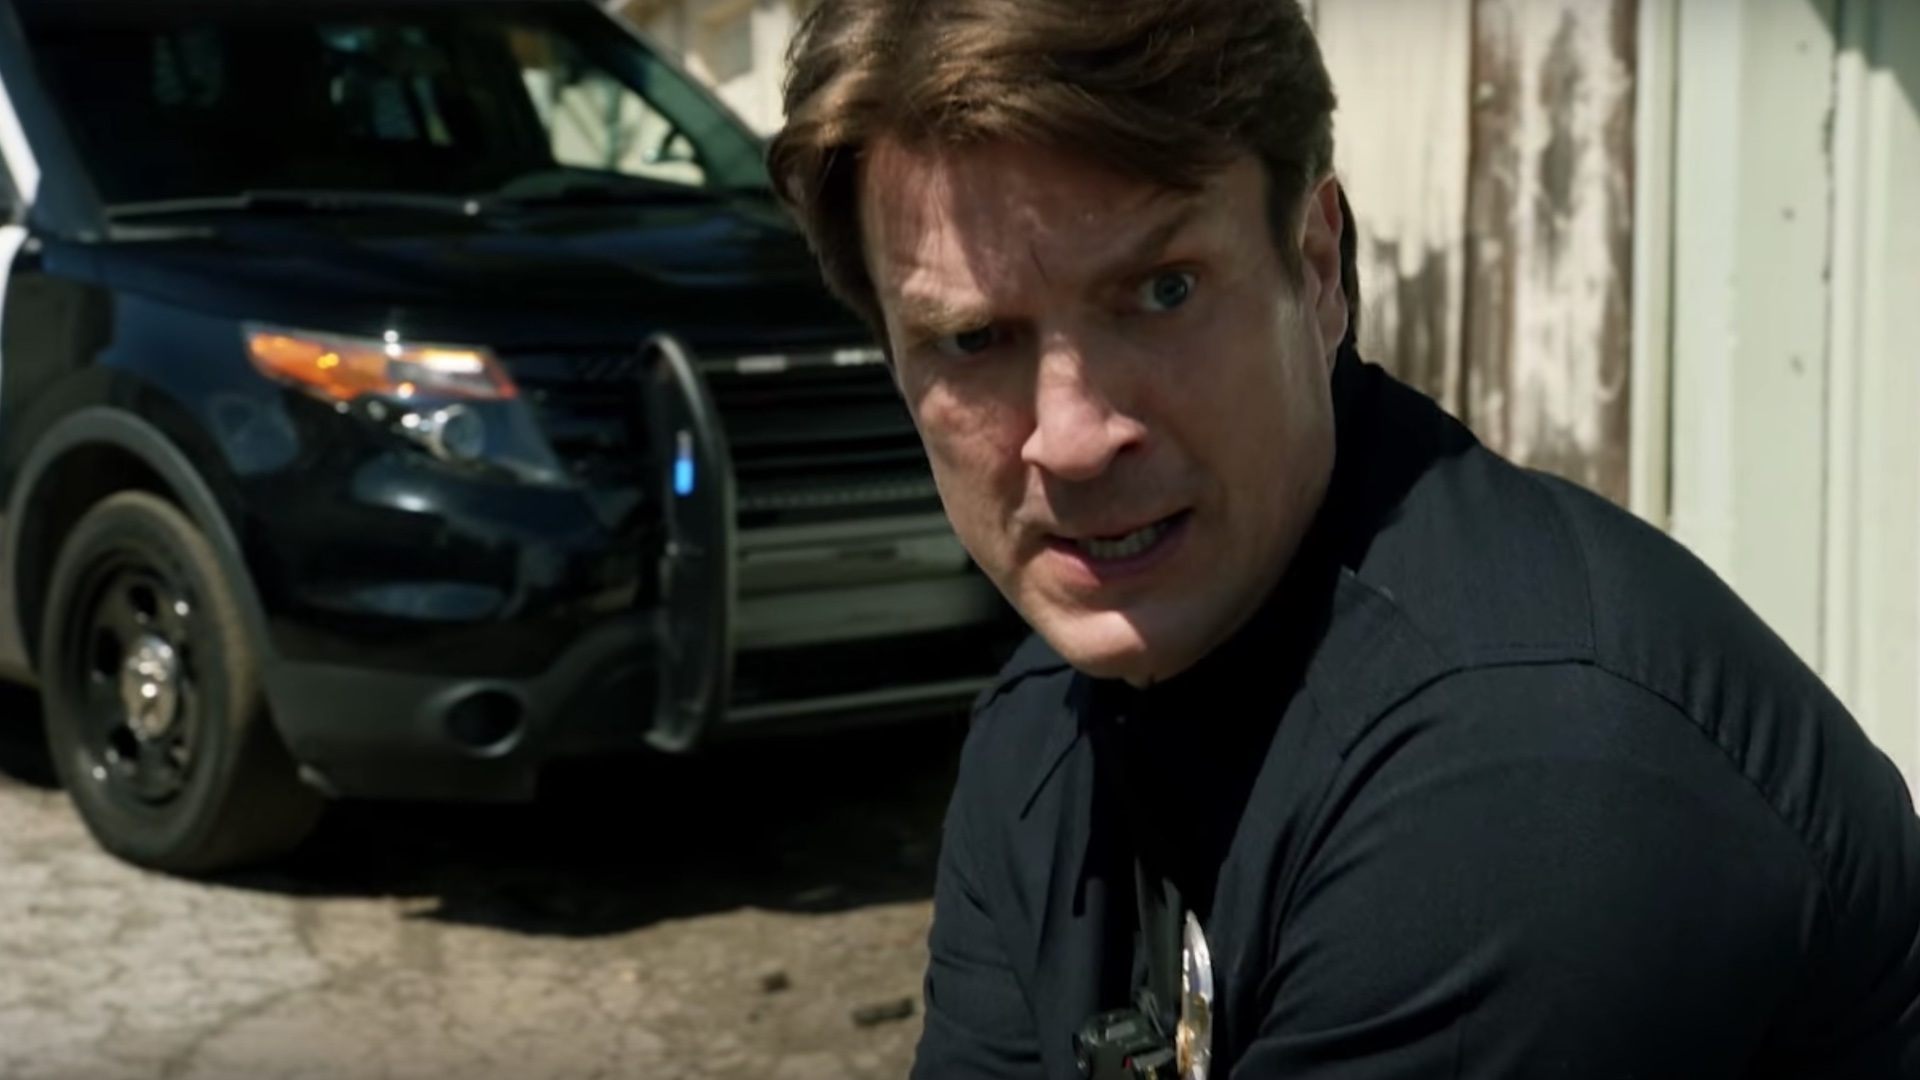 nathan-fillion-is-set-to-star-in-james-gunns-the-suicide-squad-social.jpg